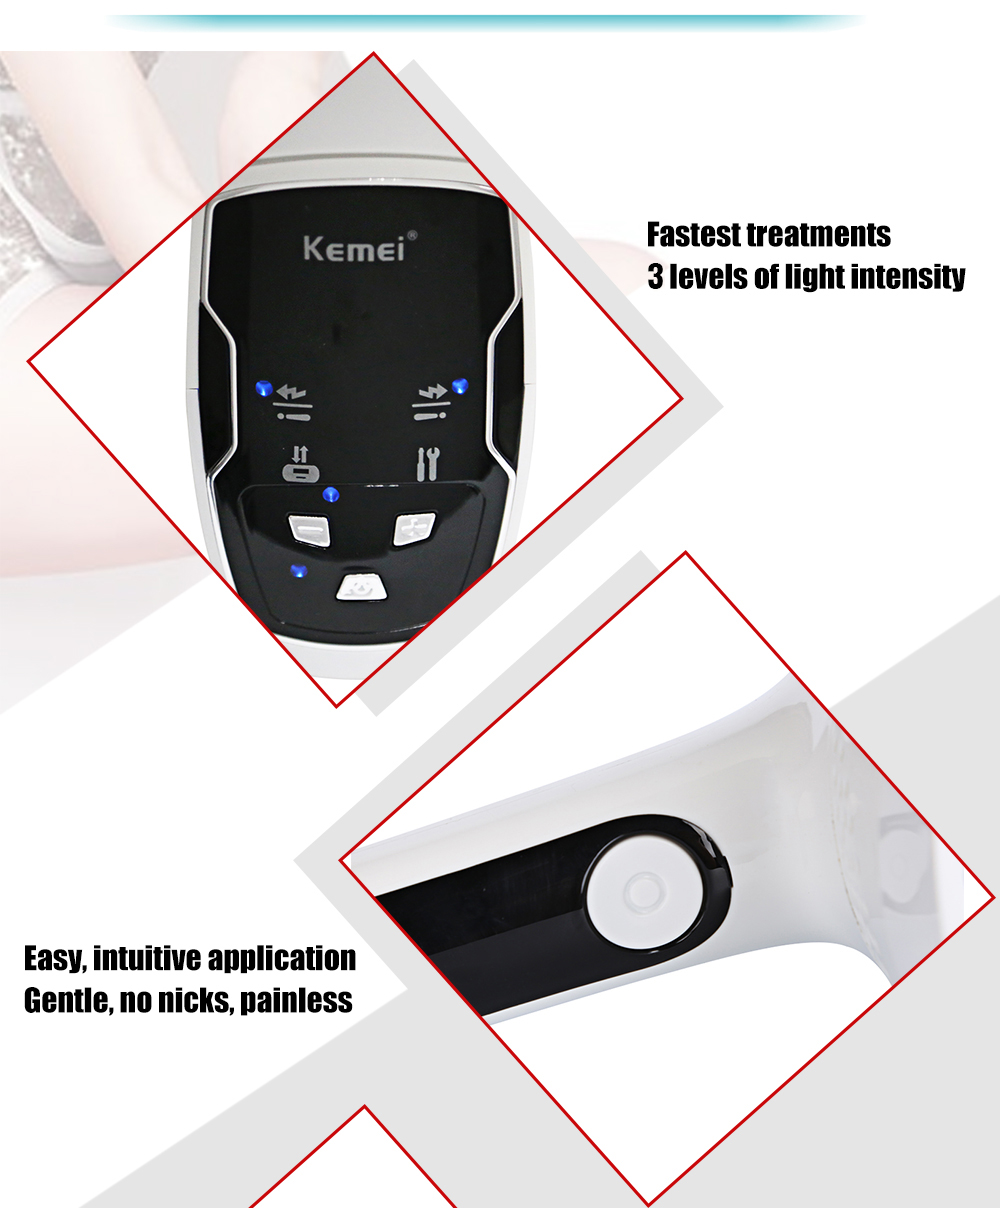 Kemei KM - 6812 Photon Permanent Hair Removal Device